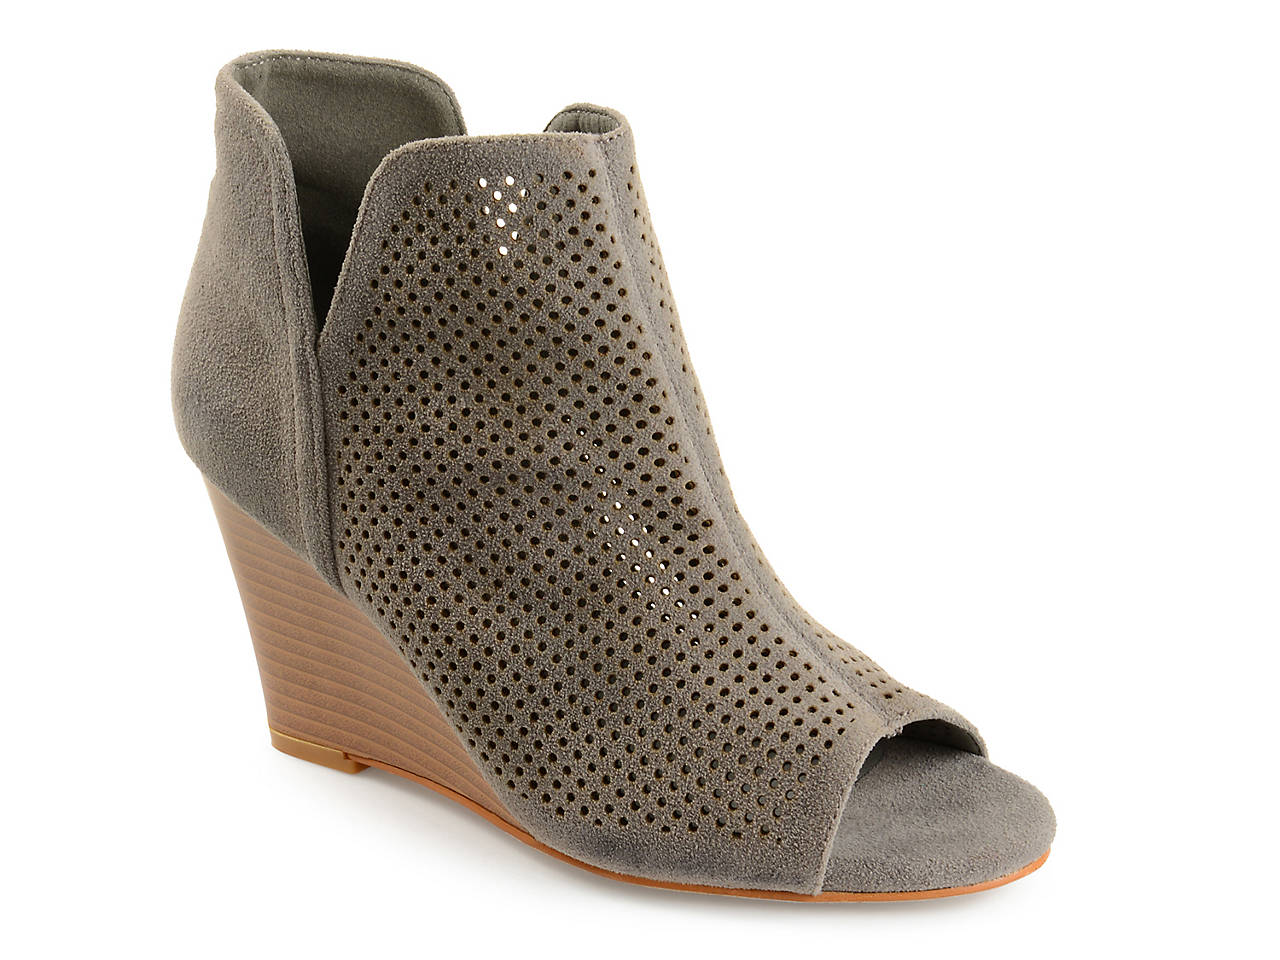 edc507a1451 Journee Collection Andies Wedge Bootie Women s Shoes